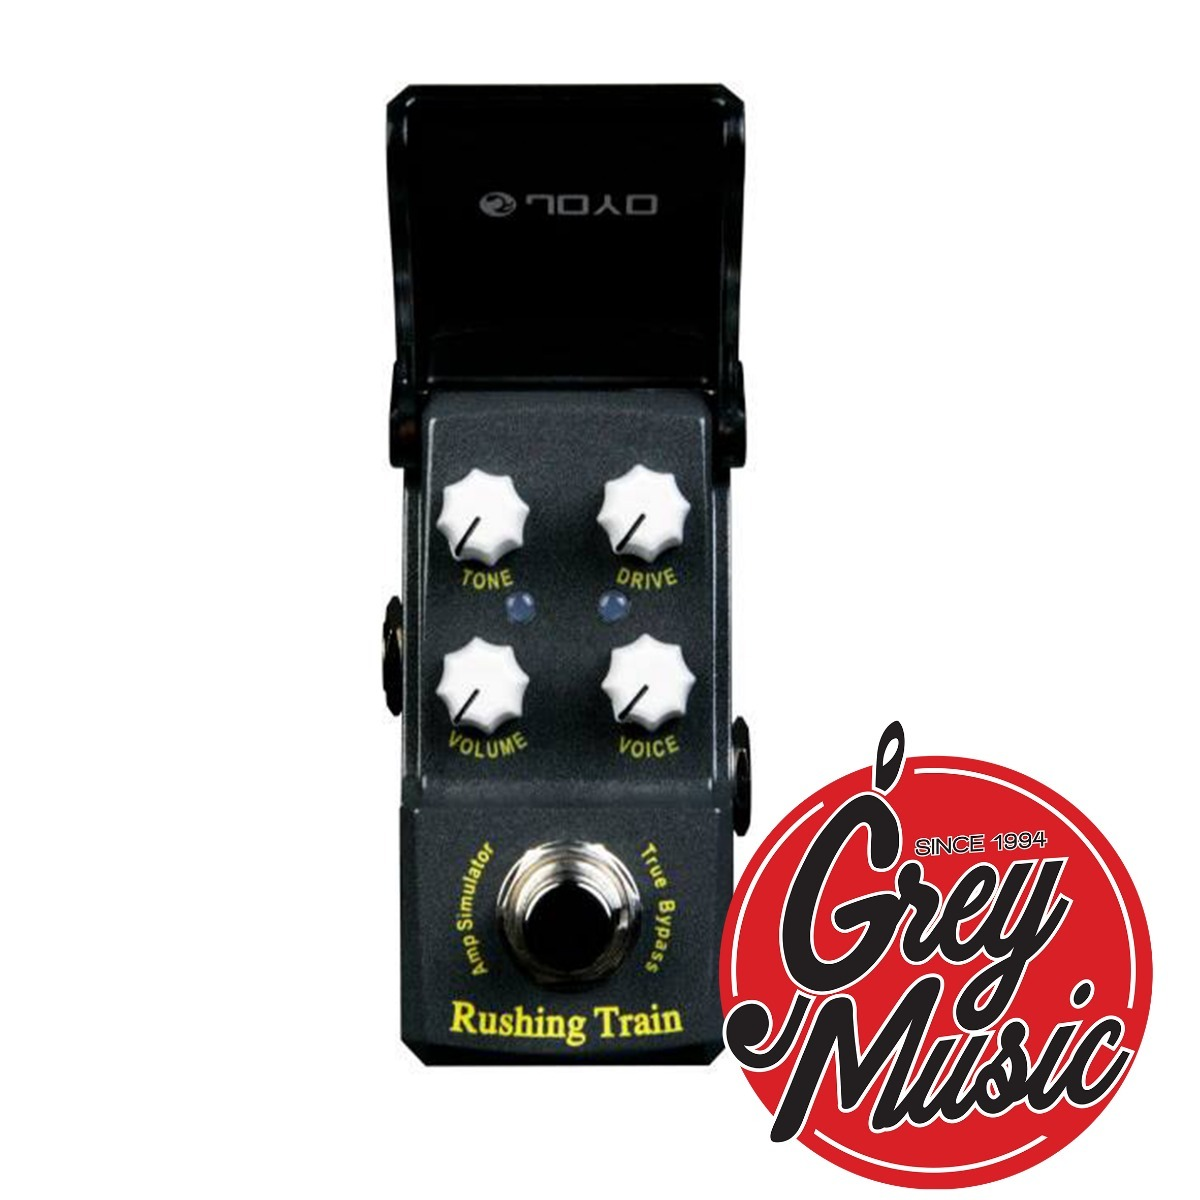 Pedal De Efecto Emulador Joyo Jf306 Rushing Train Ironman